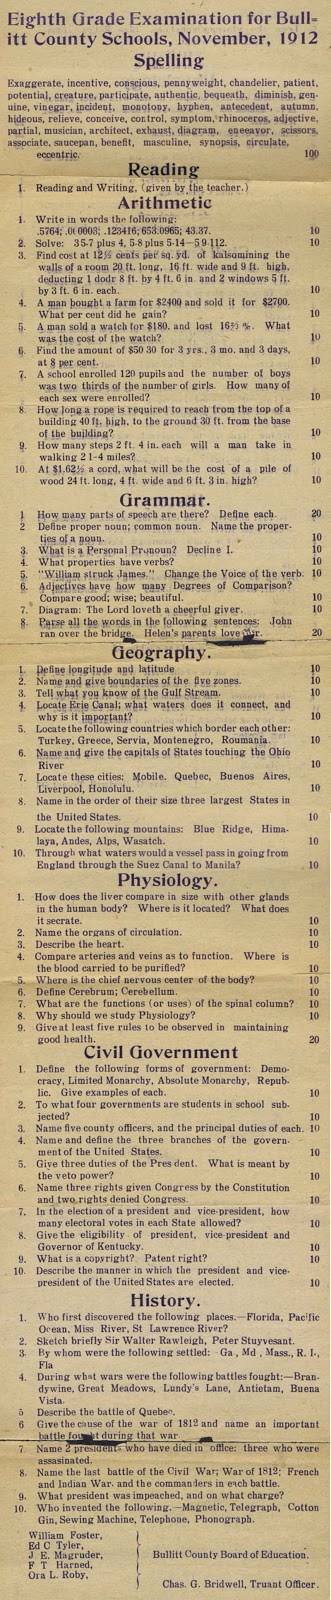 1912 test for eighth graders dating 8